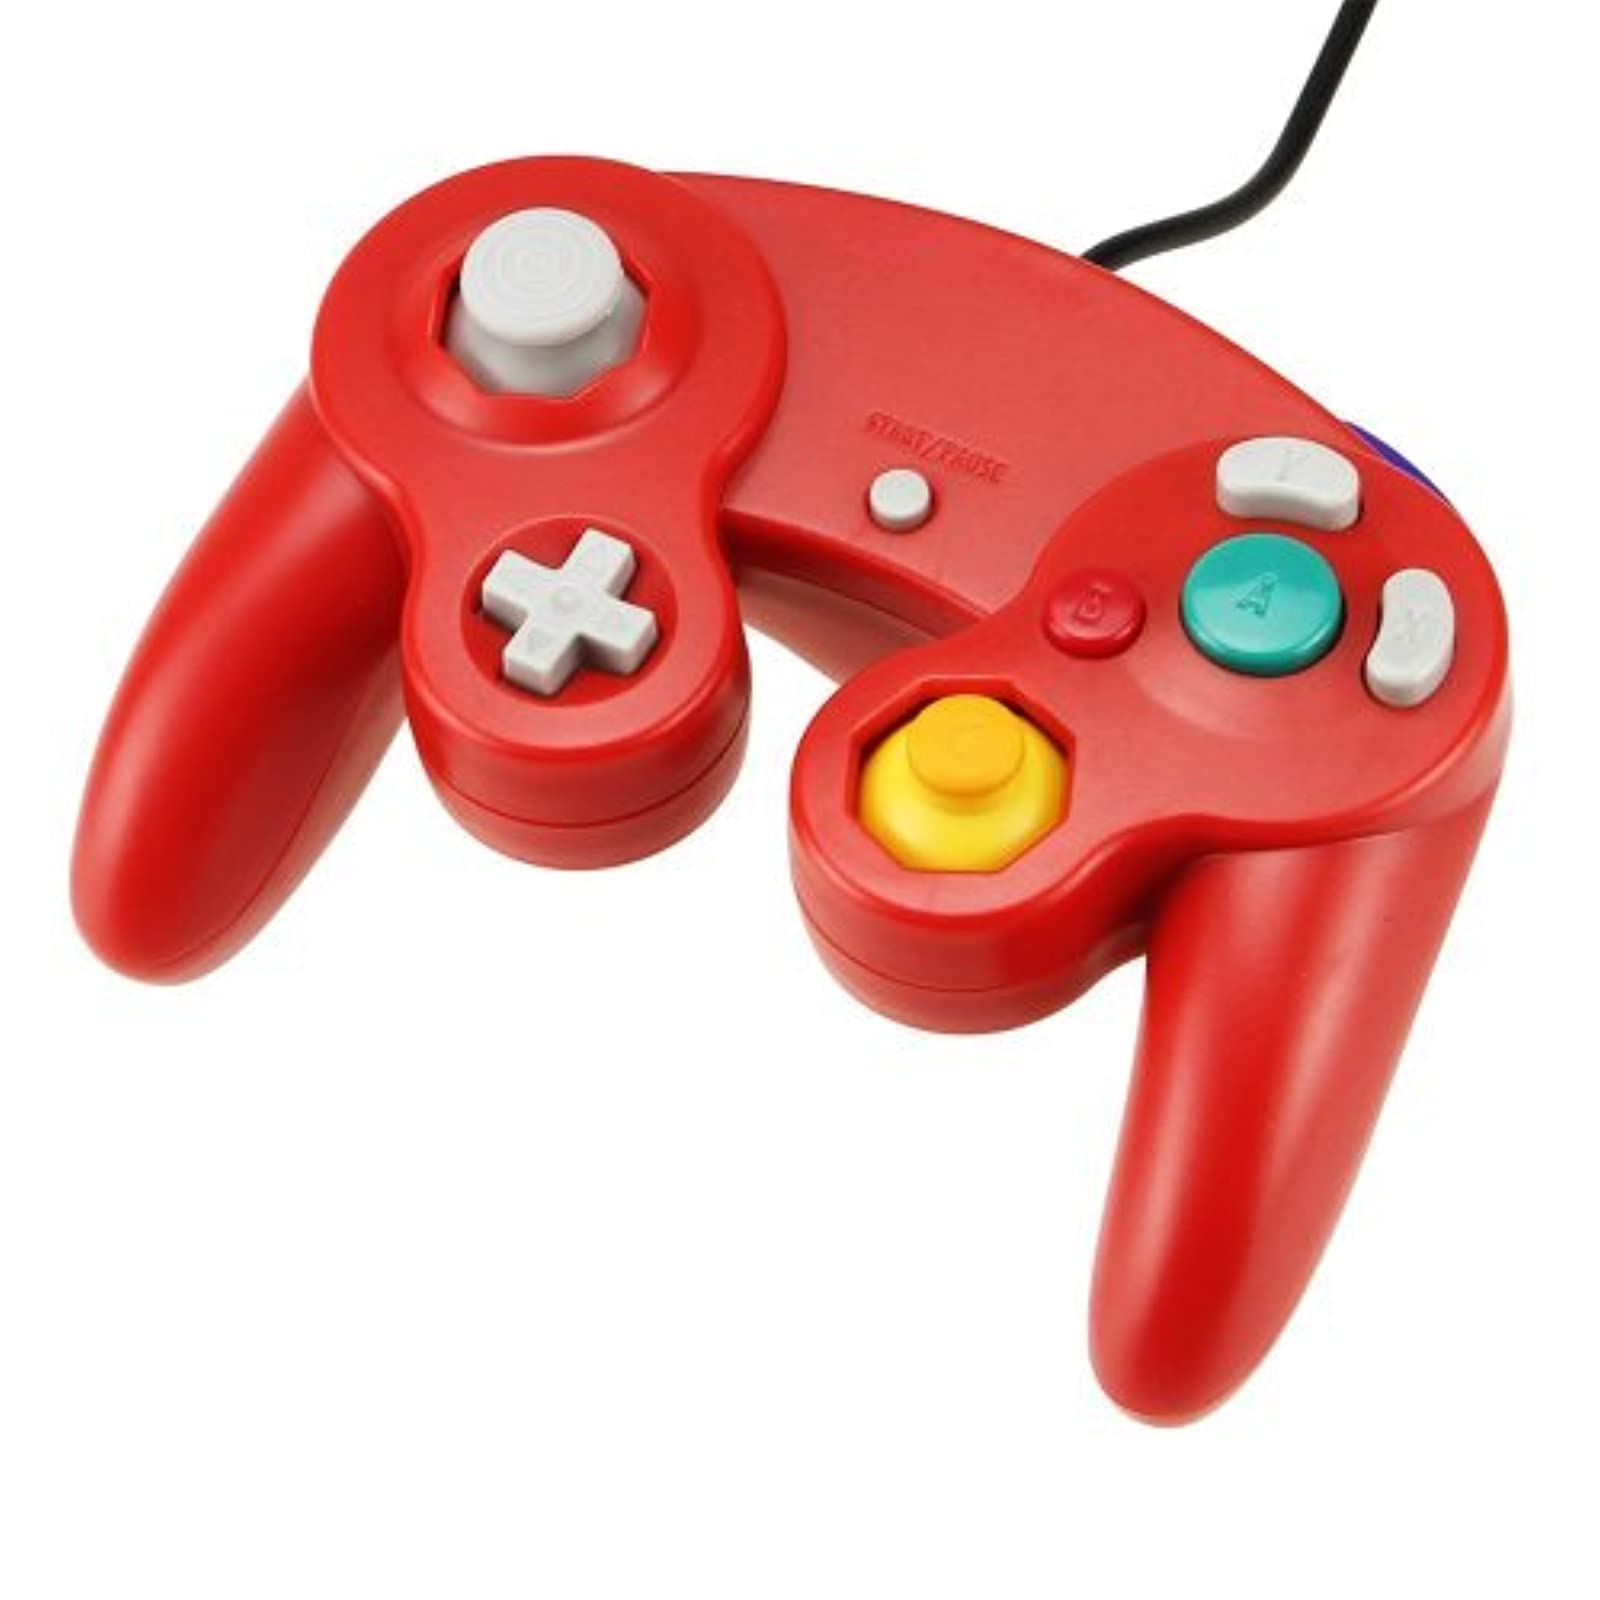 Game Controller Pad For Nintendo GameCube GC Wii Red